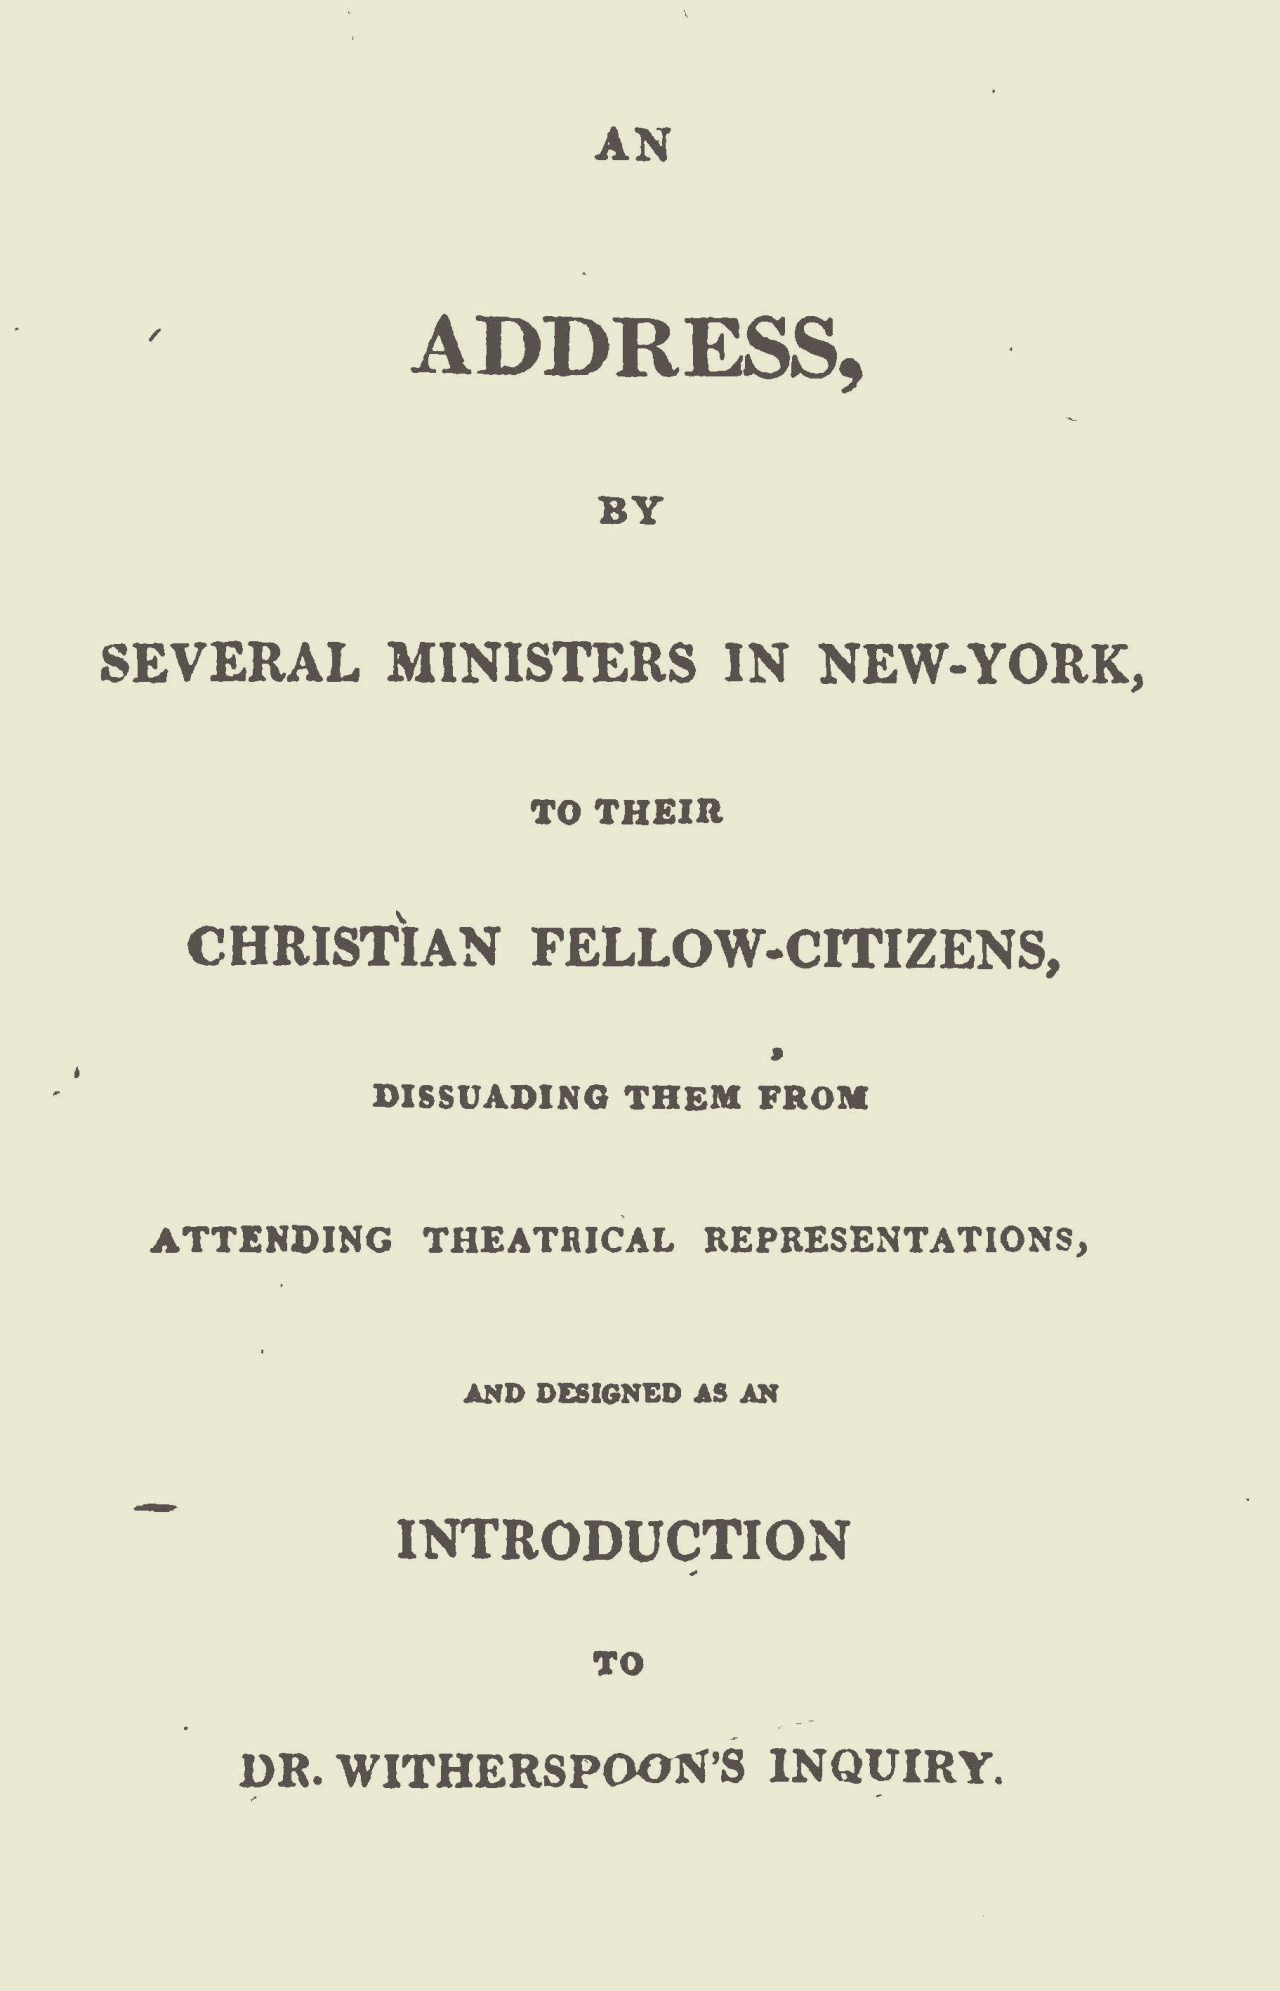 Ely, Ezra Stiles, An Address on Theatrical Representations Title Page.jpg